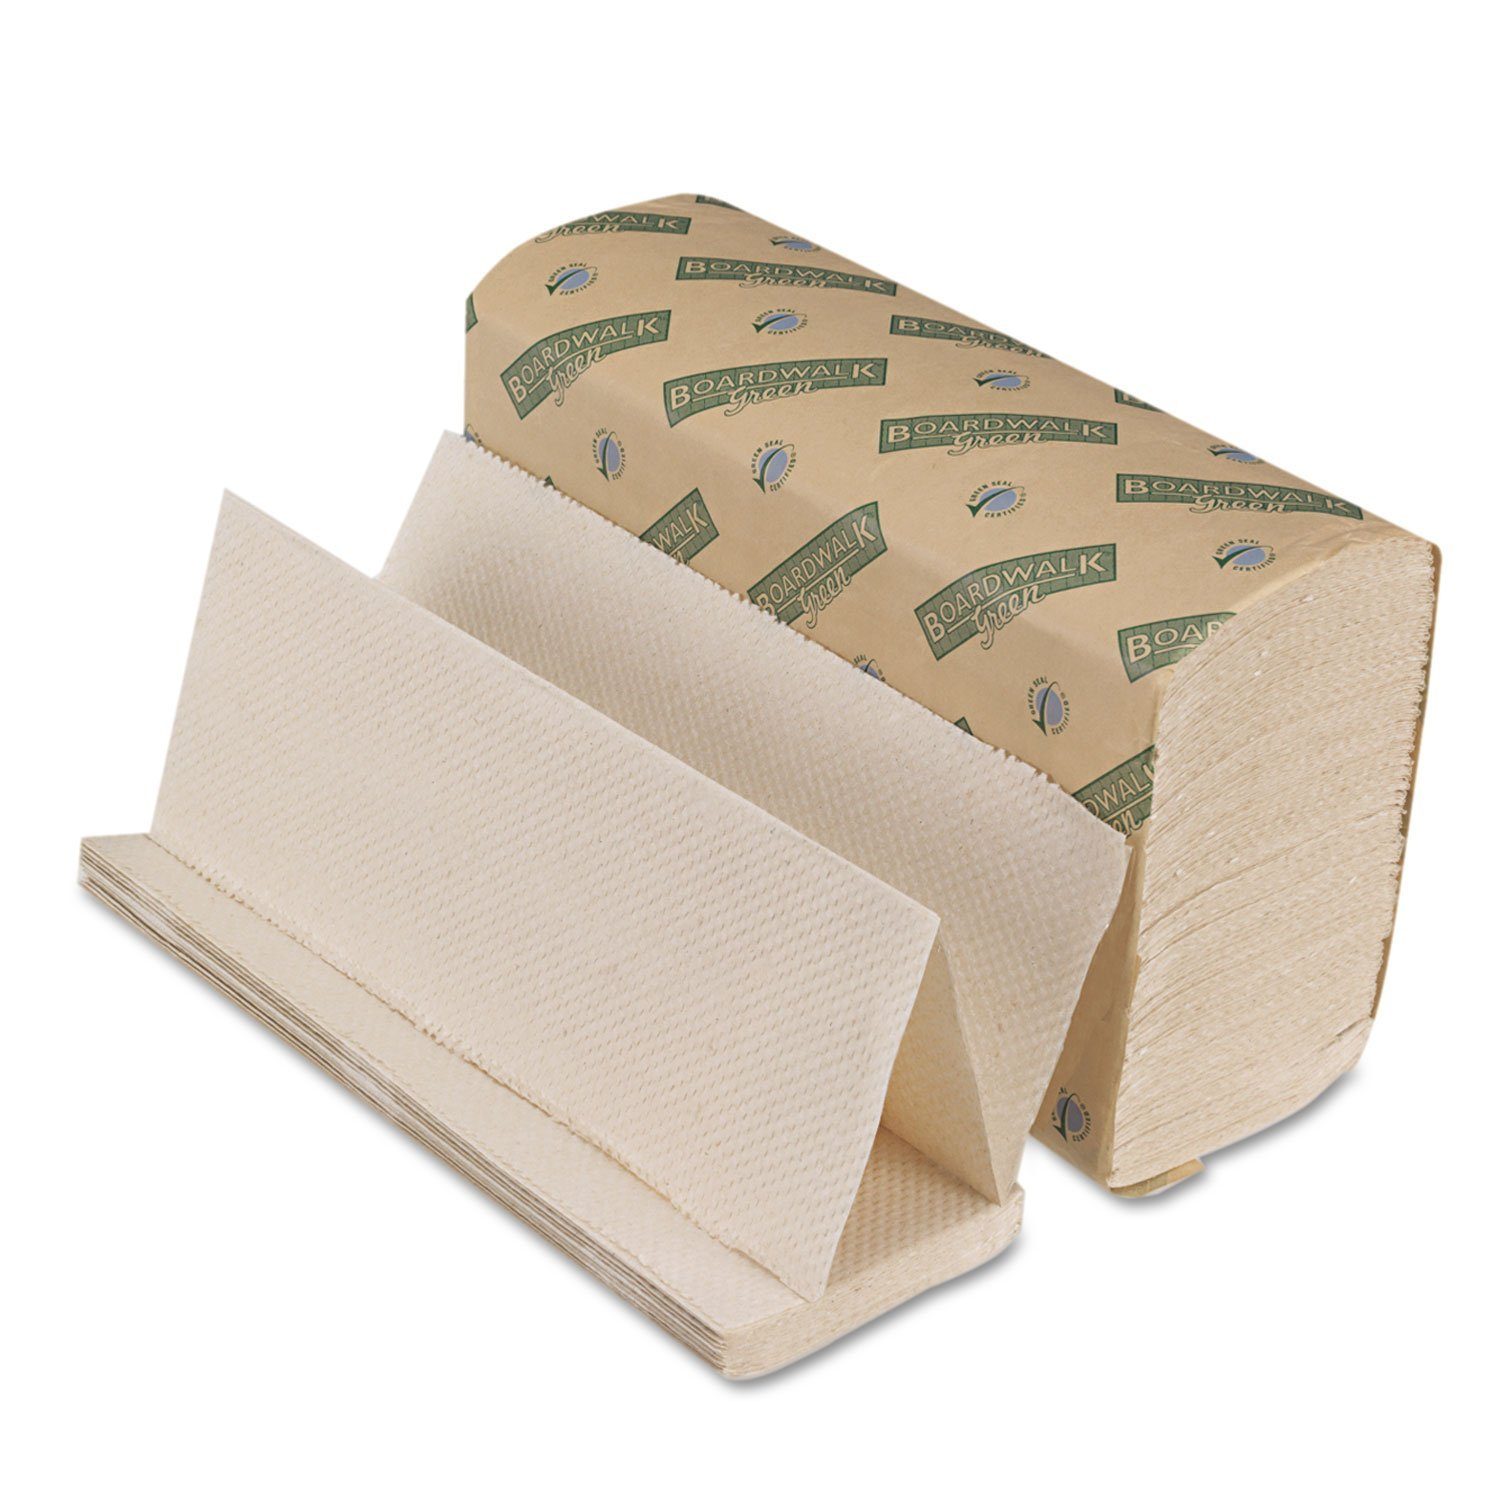 Green Folded Paper Towels, Multi-Fold, Natural We, 9 1/8W X 9 1/2L, 4000/Carton (10Green)..., By Boardwalk Ship from US